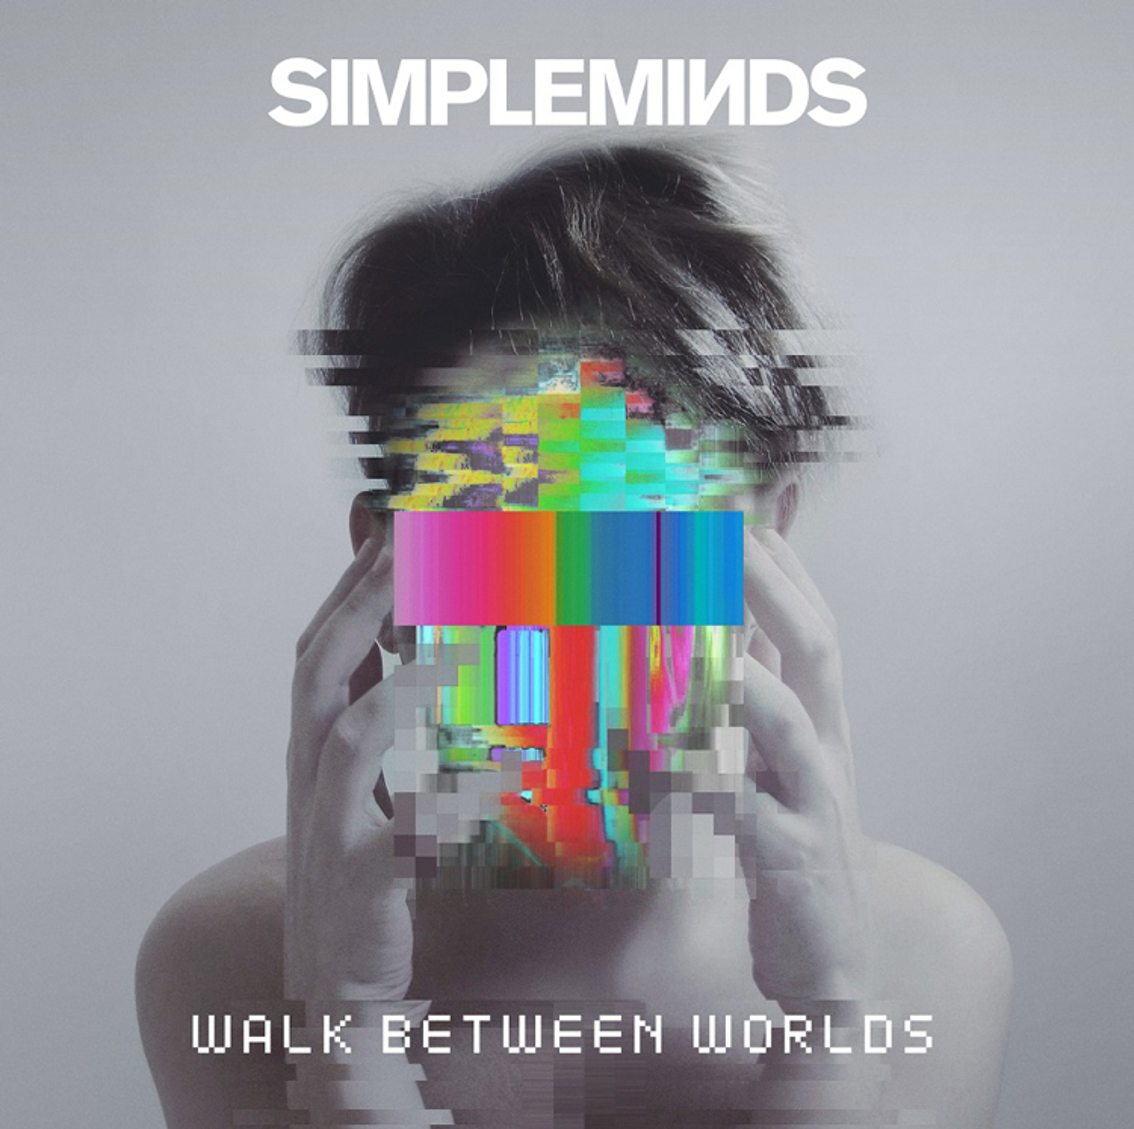 Simple Minds returns with new album in February: 'Walk Between Worlds' - listen to the trailer